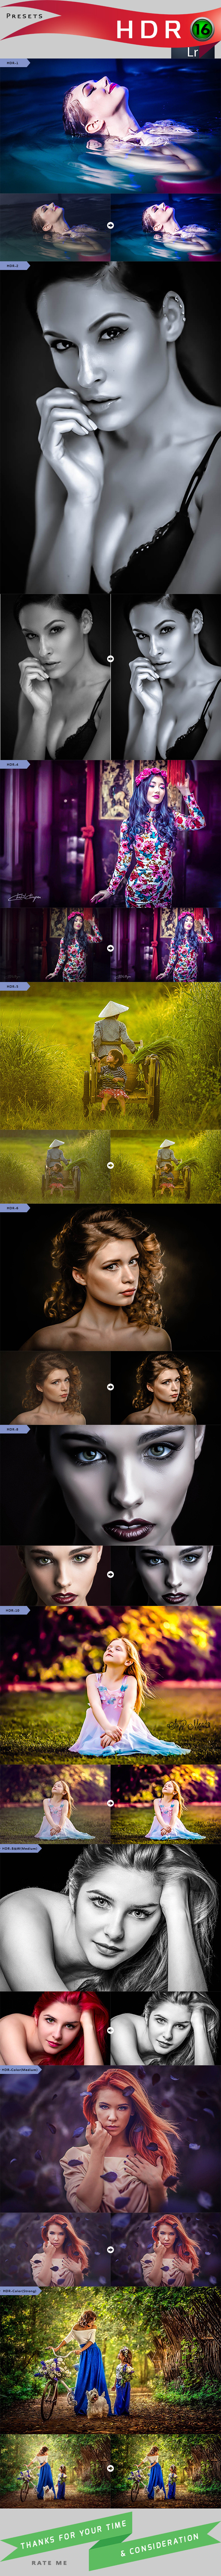 GraphicRiver 16 HDR 11851368